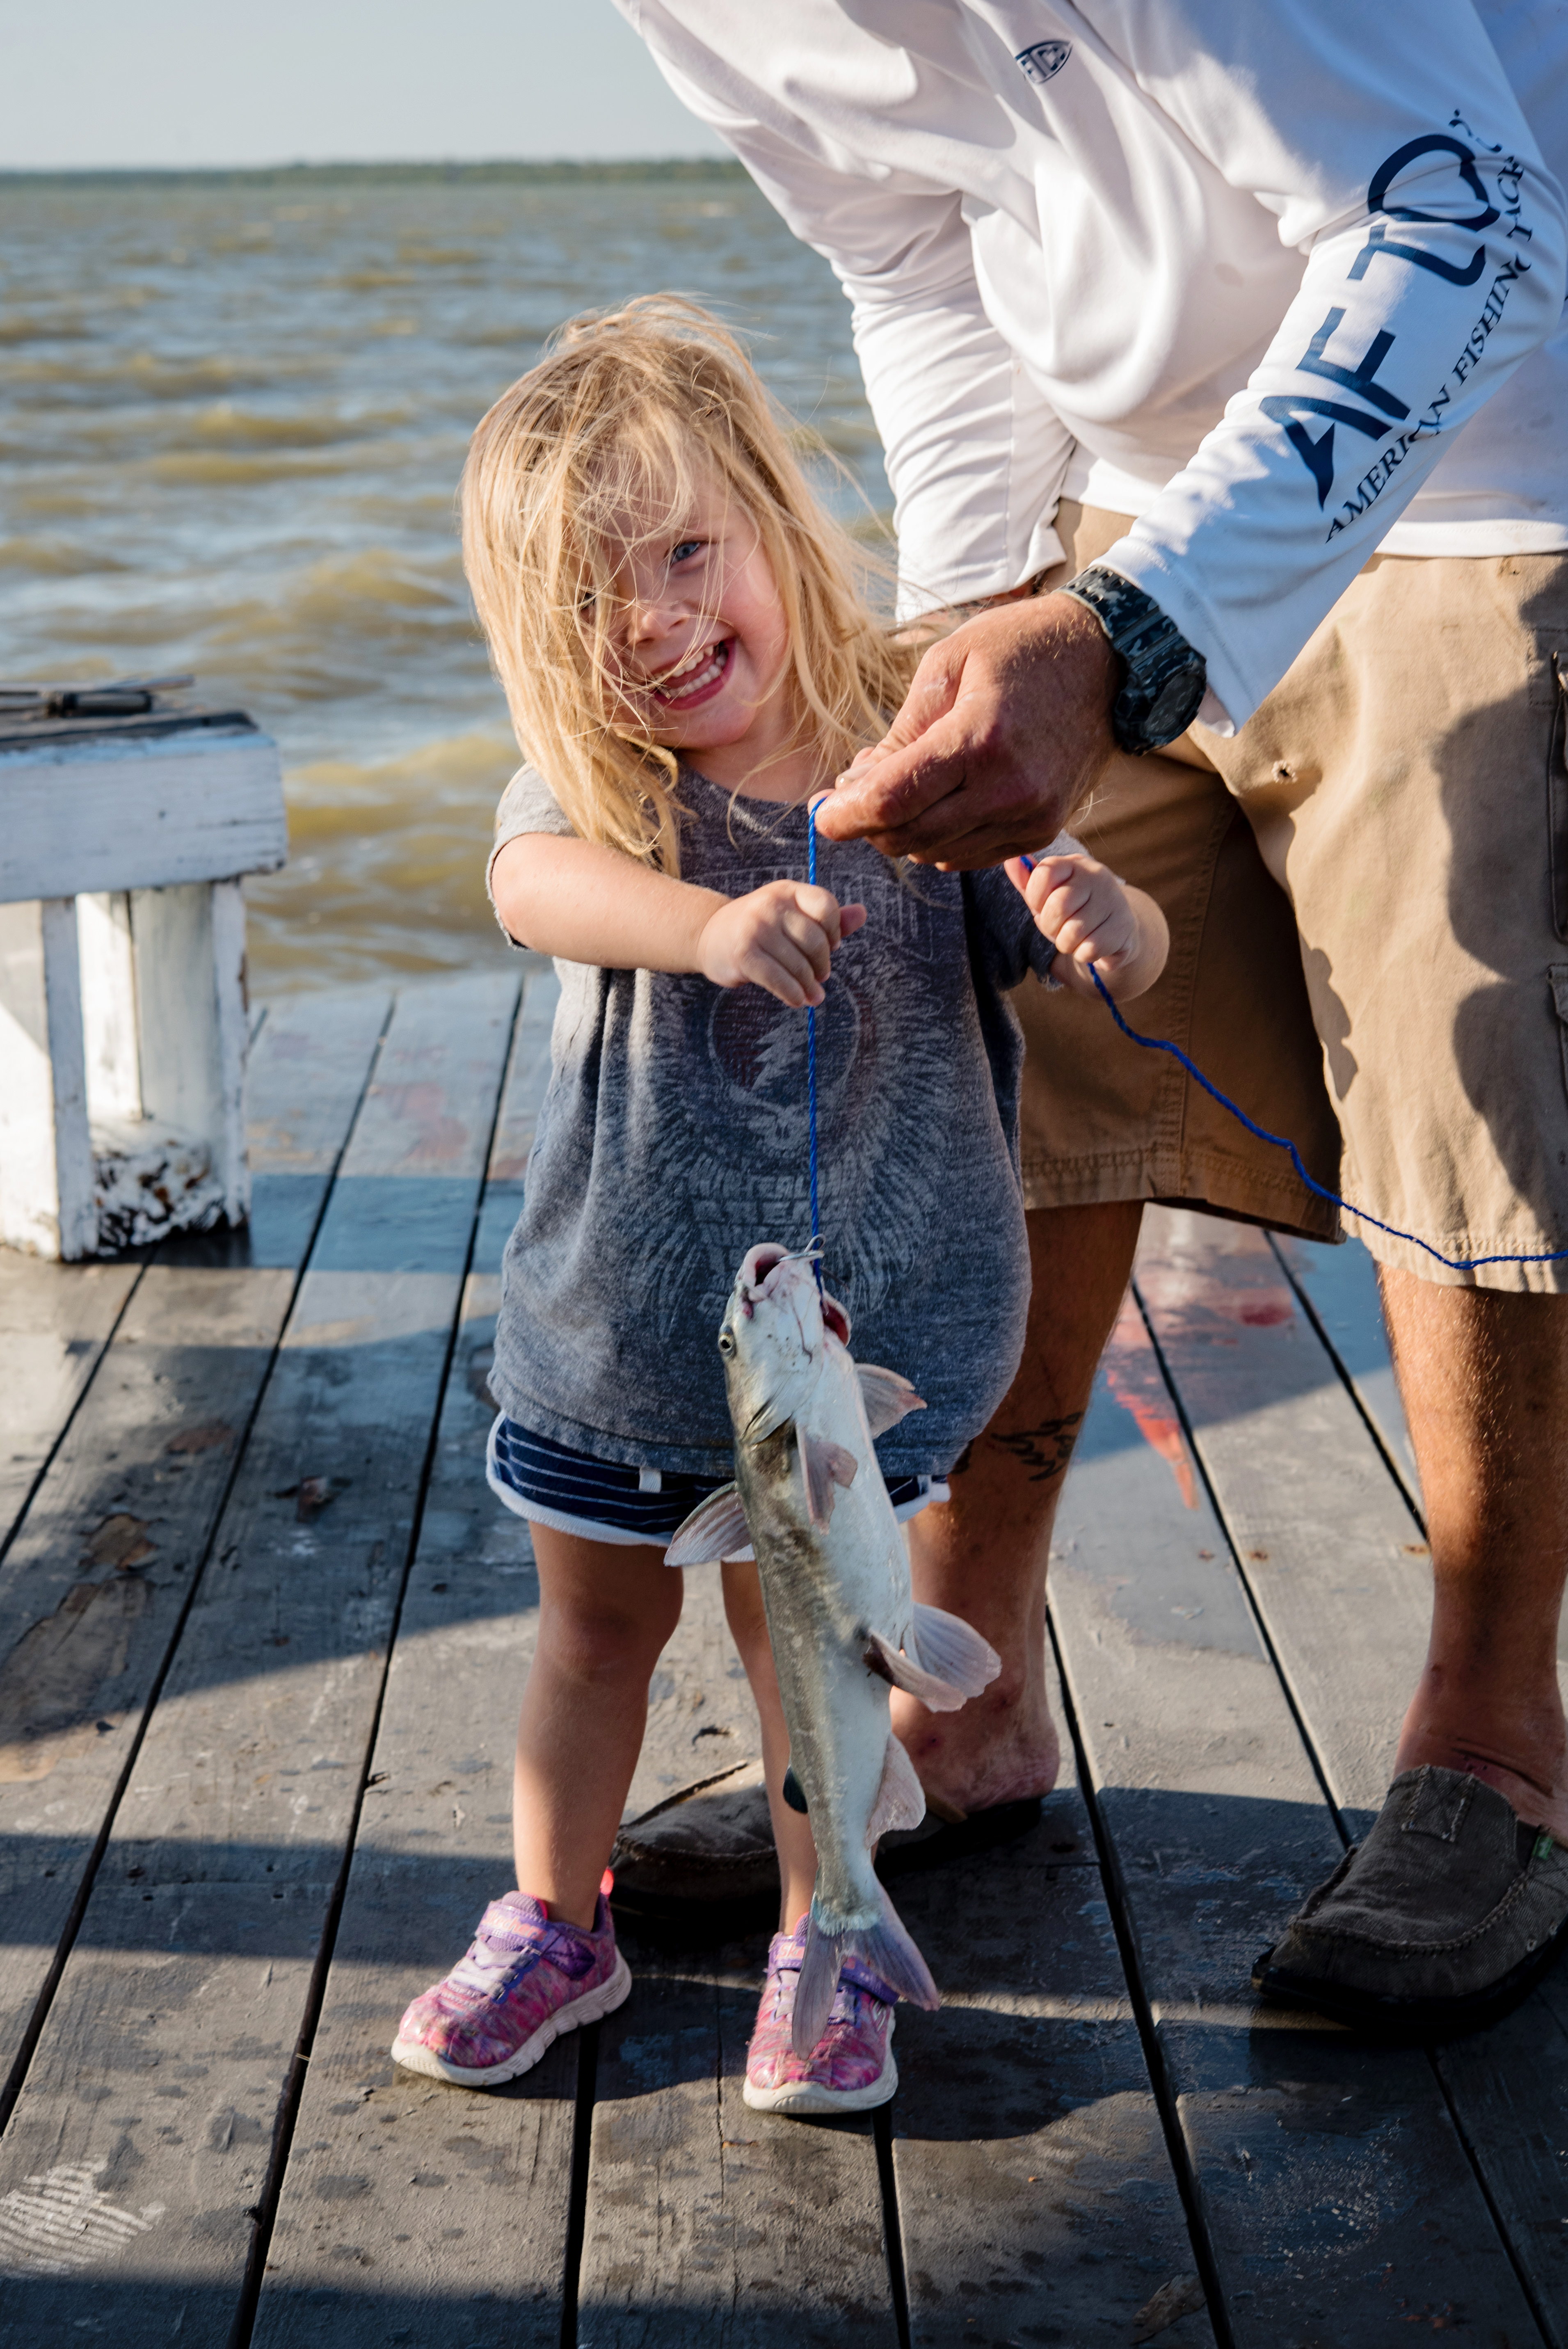 Little fisherman showing off their catch.